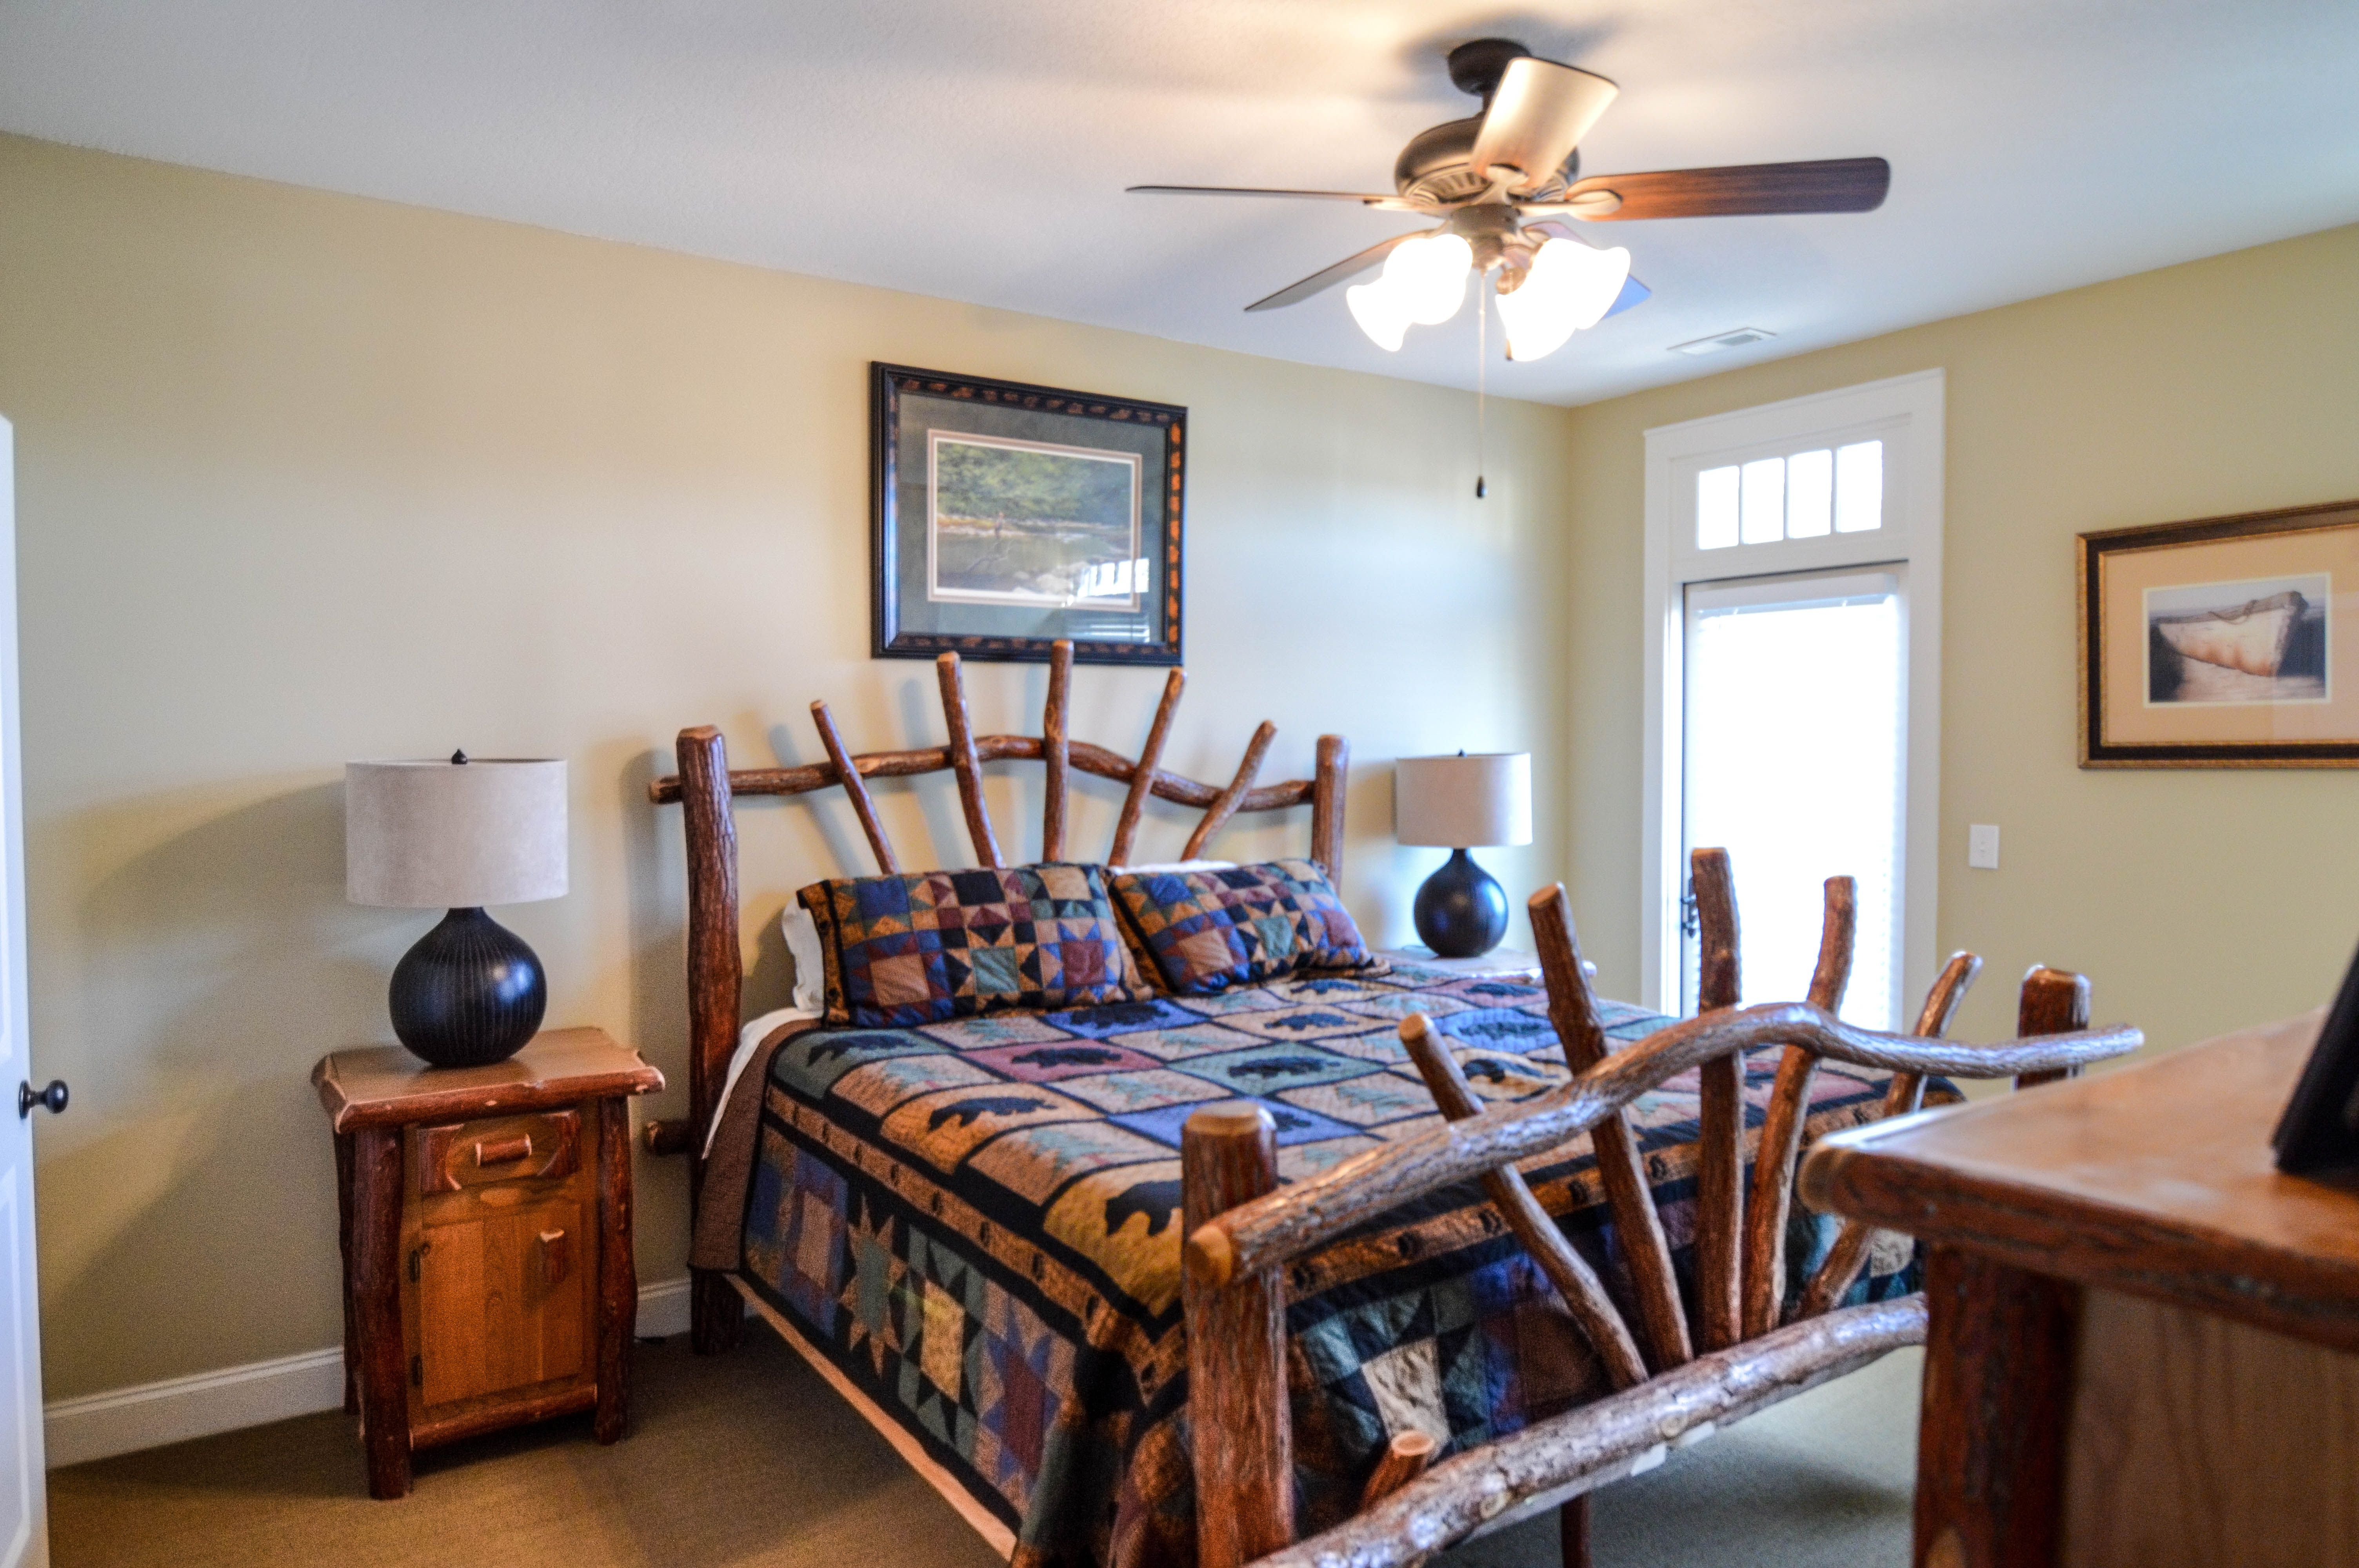 In this codo you will find 3 large bedrooms with good space to move around and for storage. Master bedroom has it's own ensuite! For more info or to book a viewing please contact Rick Andrews 706-970-7120 or email info@bestmountaindeals.com